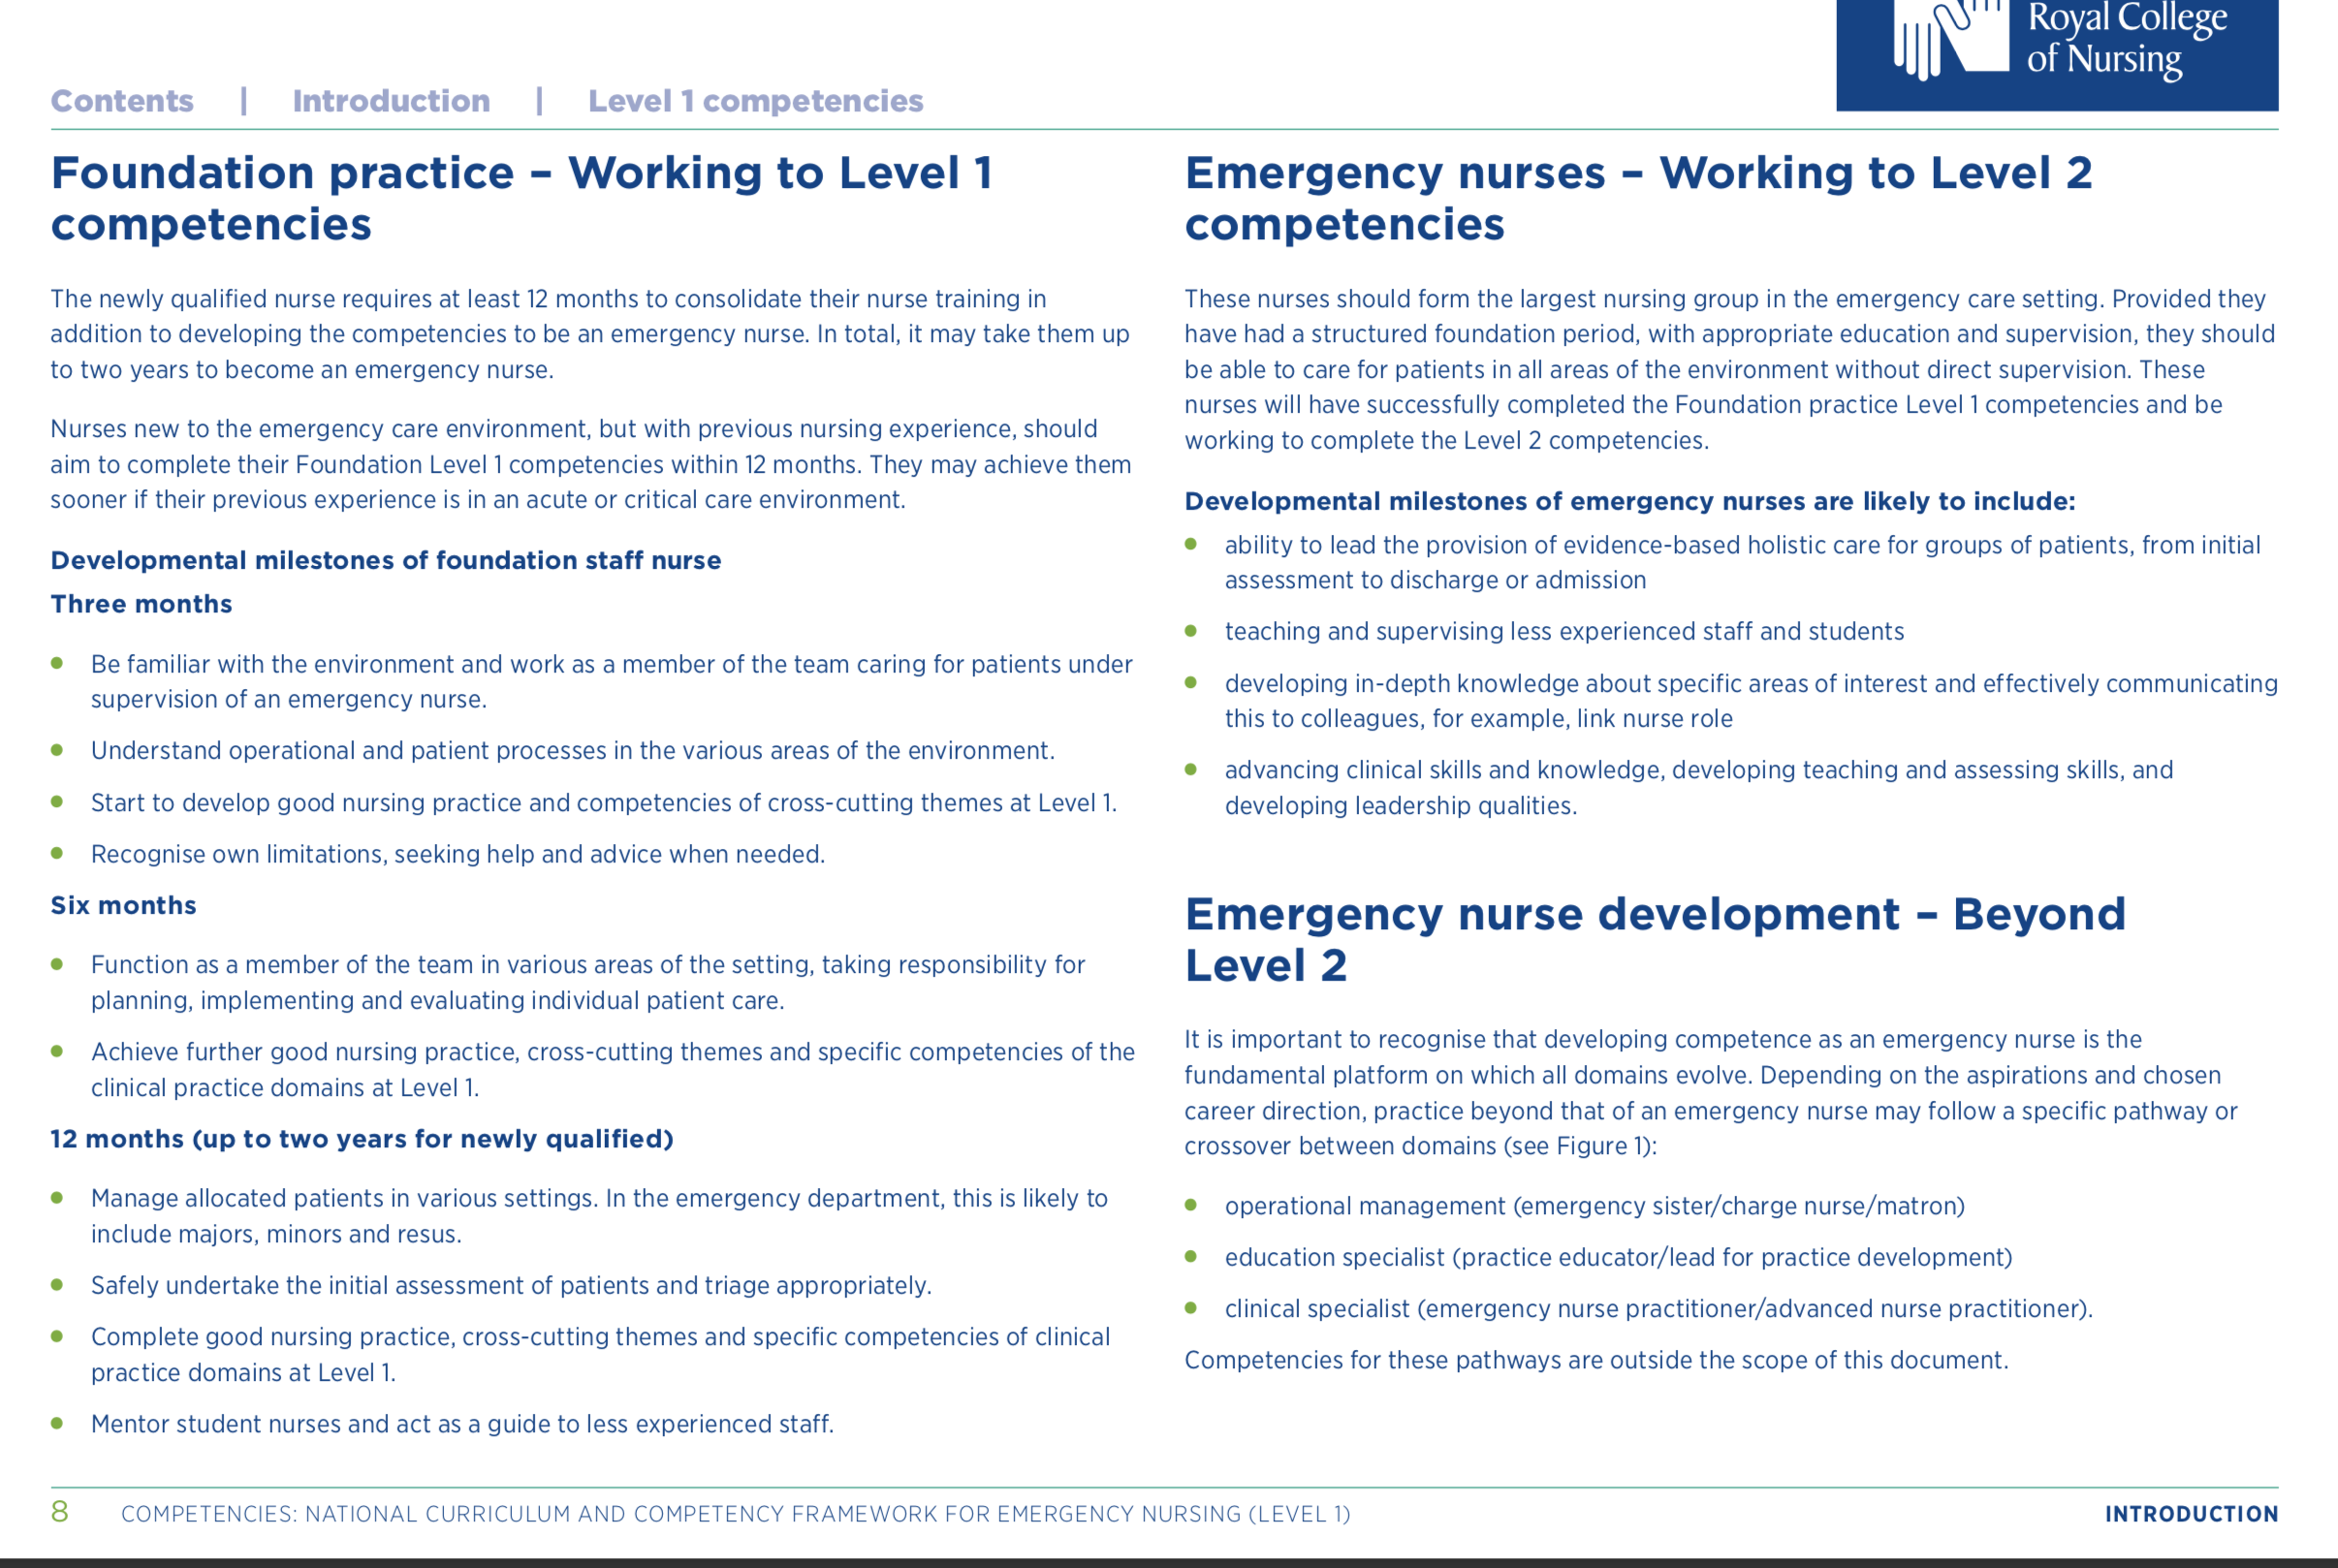 career progression through the levels in ED